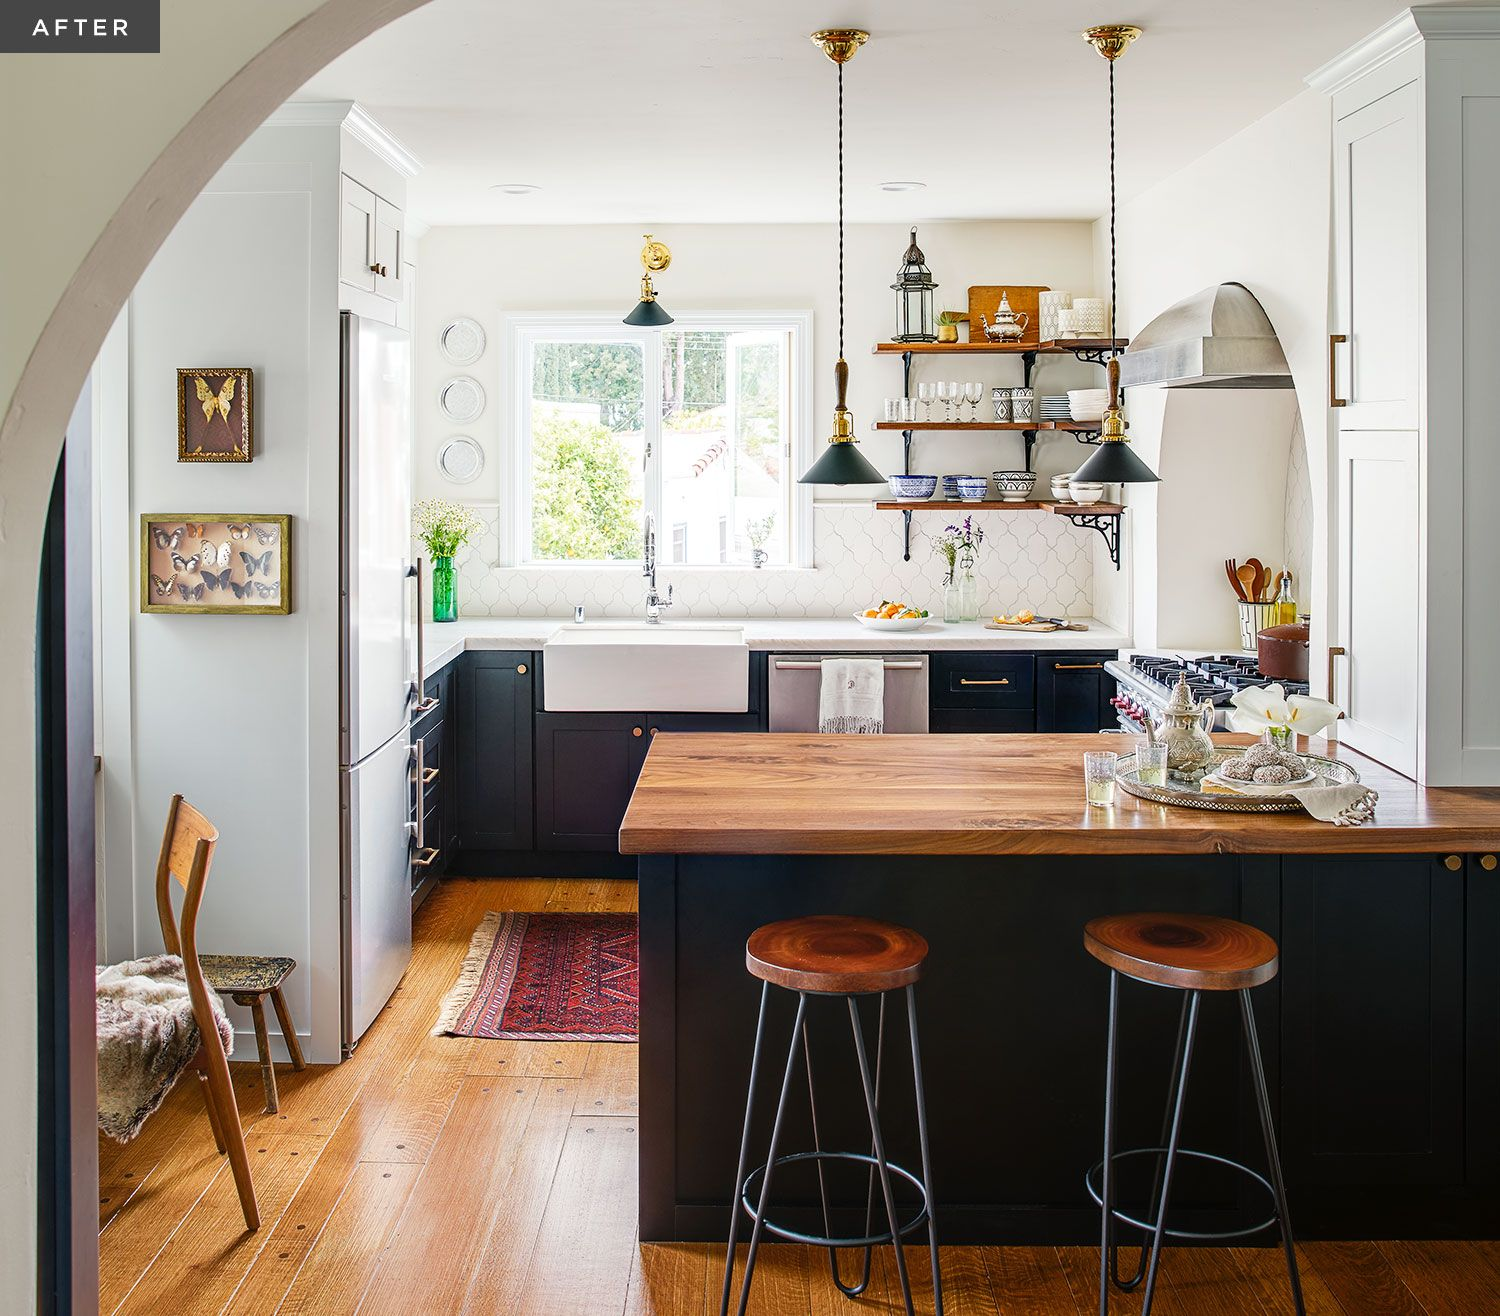 A Modern Moroccan Kitchen | Rue | The Ultimate Pinterest Board ...